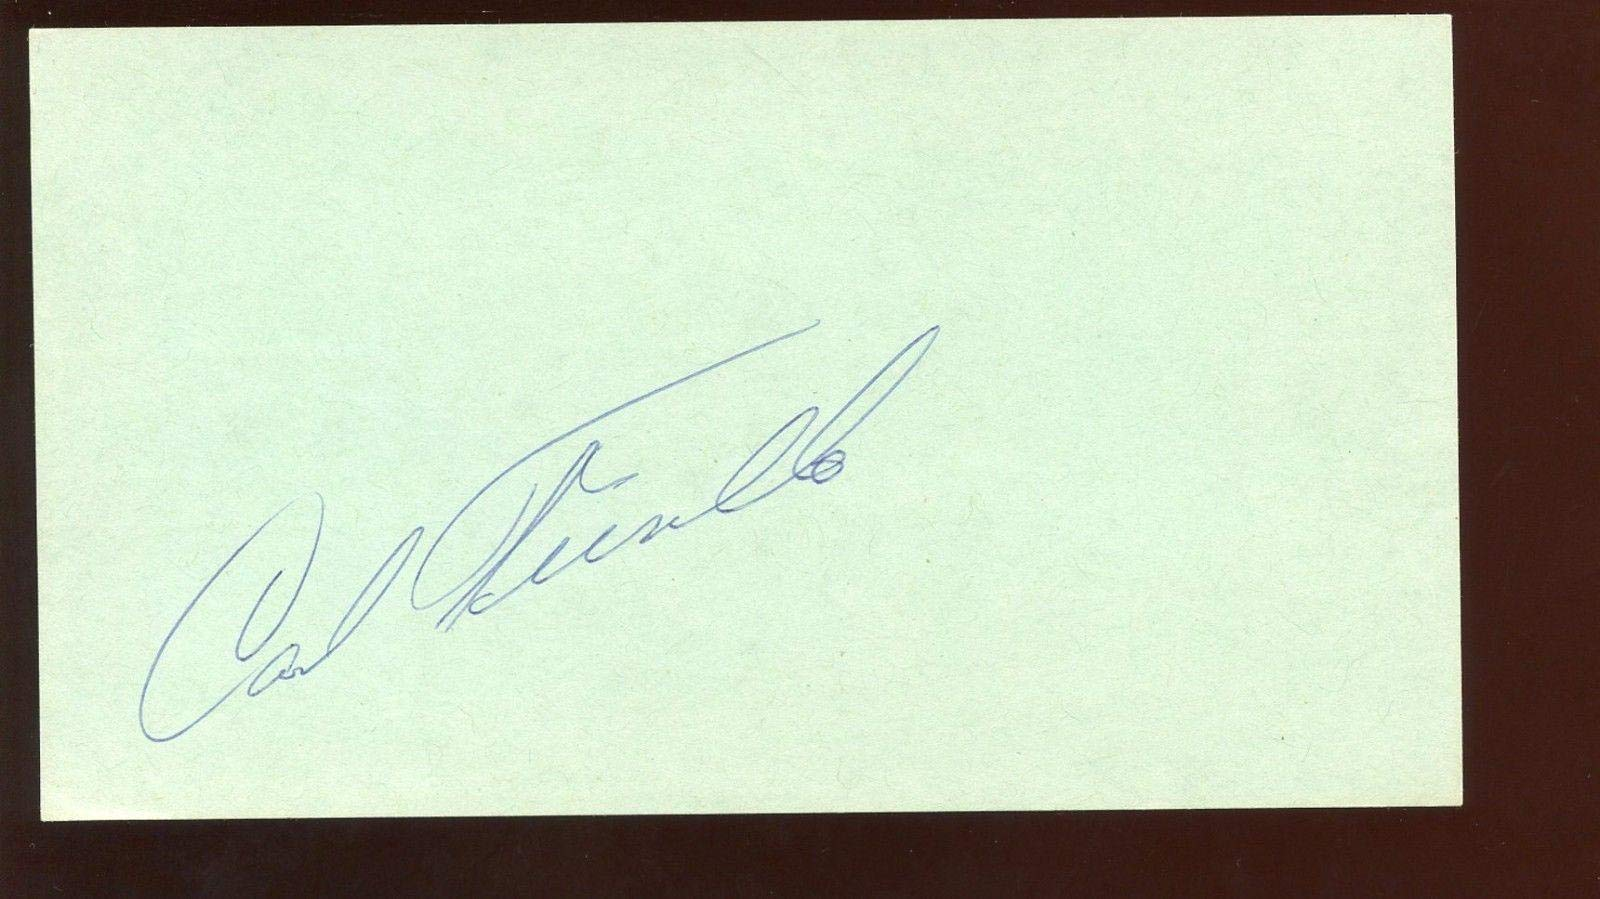 Carl Furillo Signed 3 1/2 X 6 1/4 Index Card Hologram MLB Cut Signatures